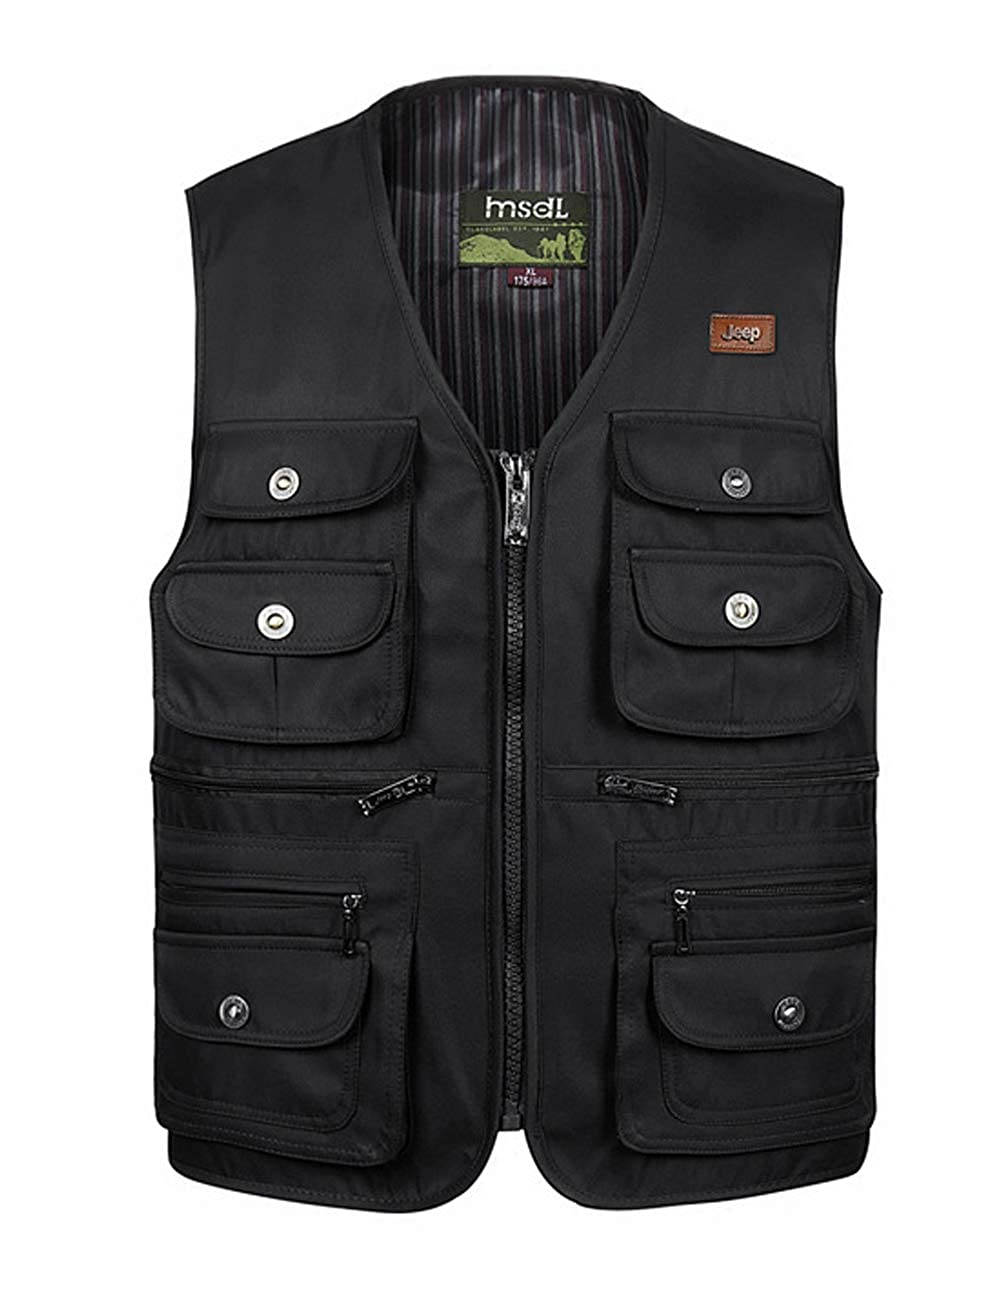 Zoulee New Men's Oversize Outdoor Photographers Vest with Multi Pockets Fishing Cotton Vest Large Size 06Zoulee1467